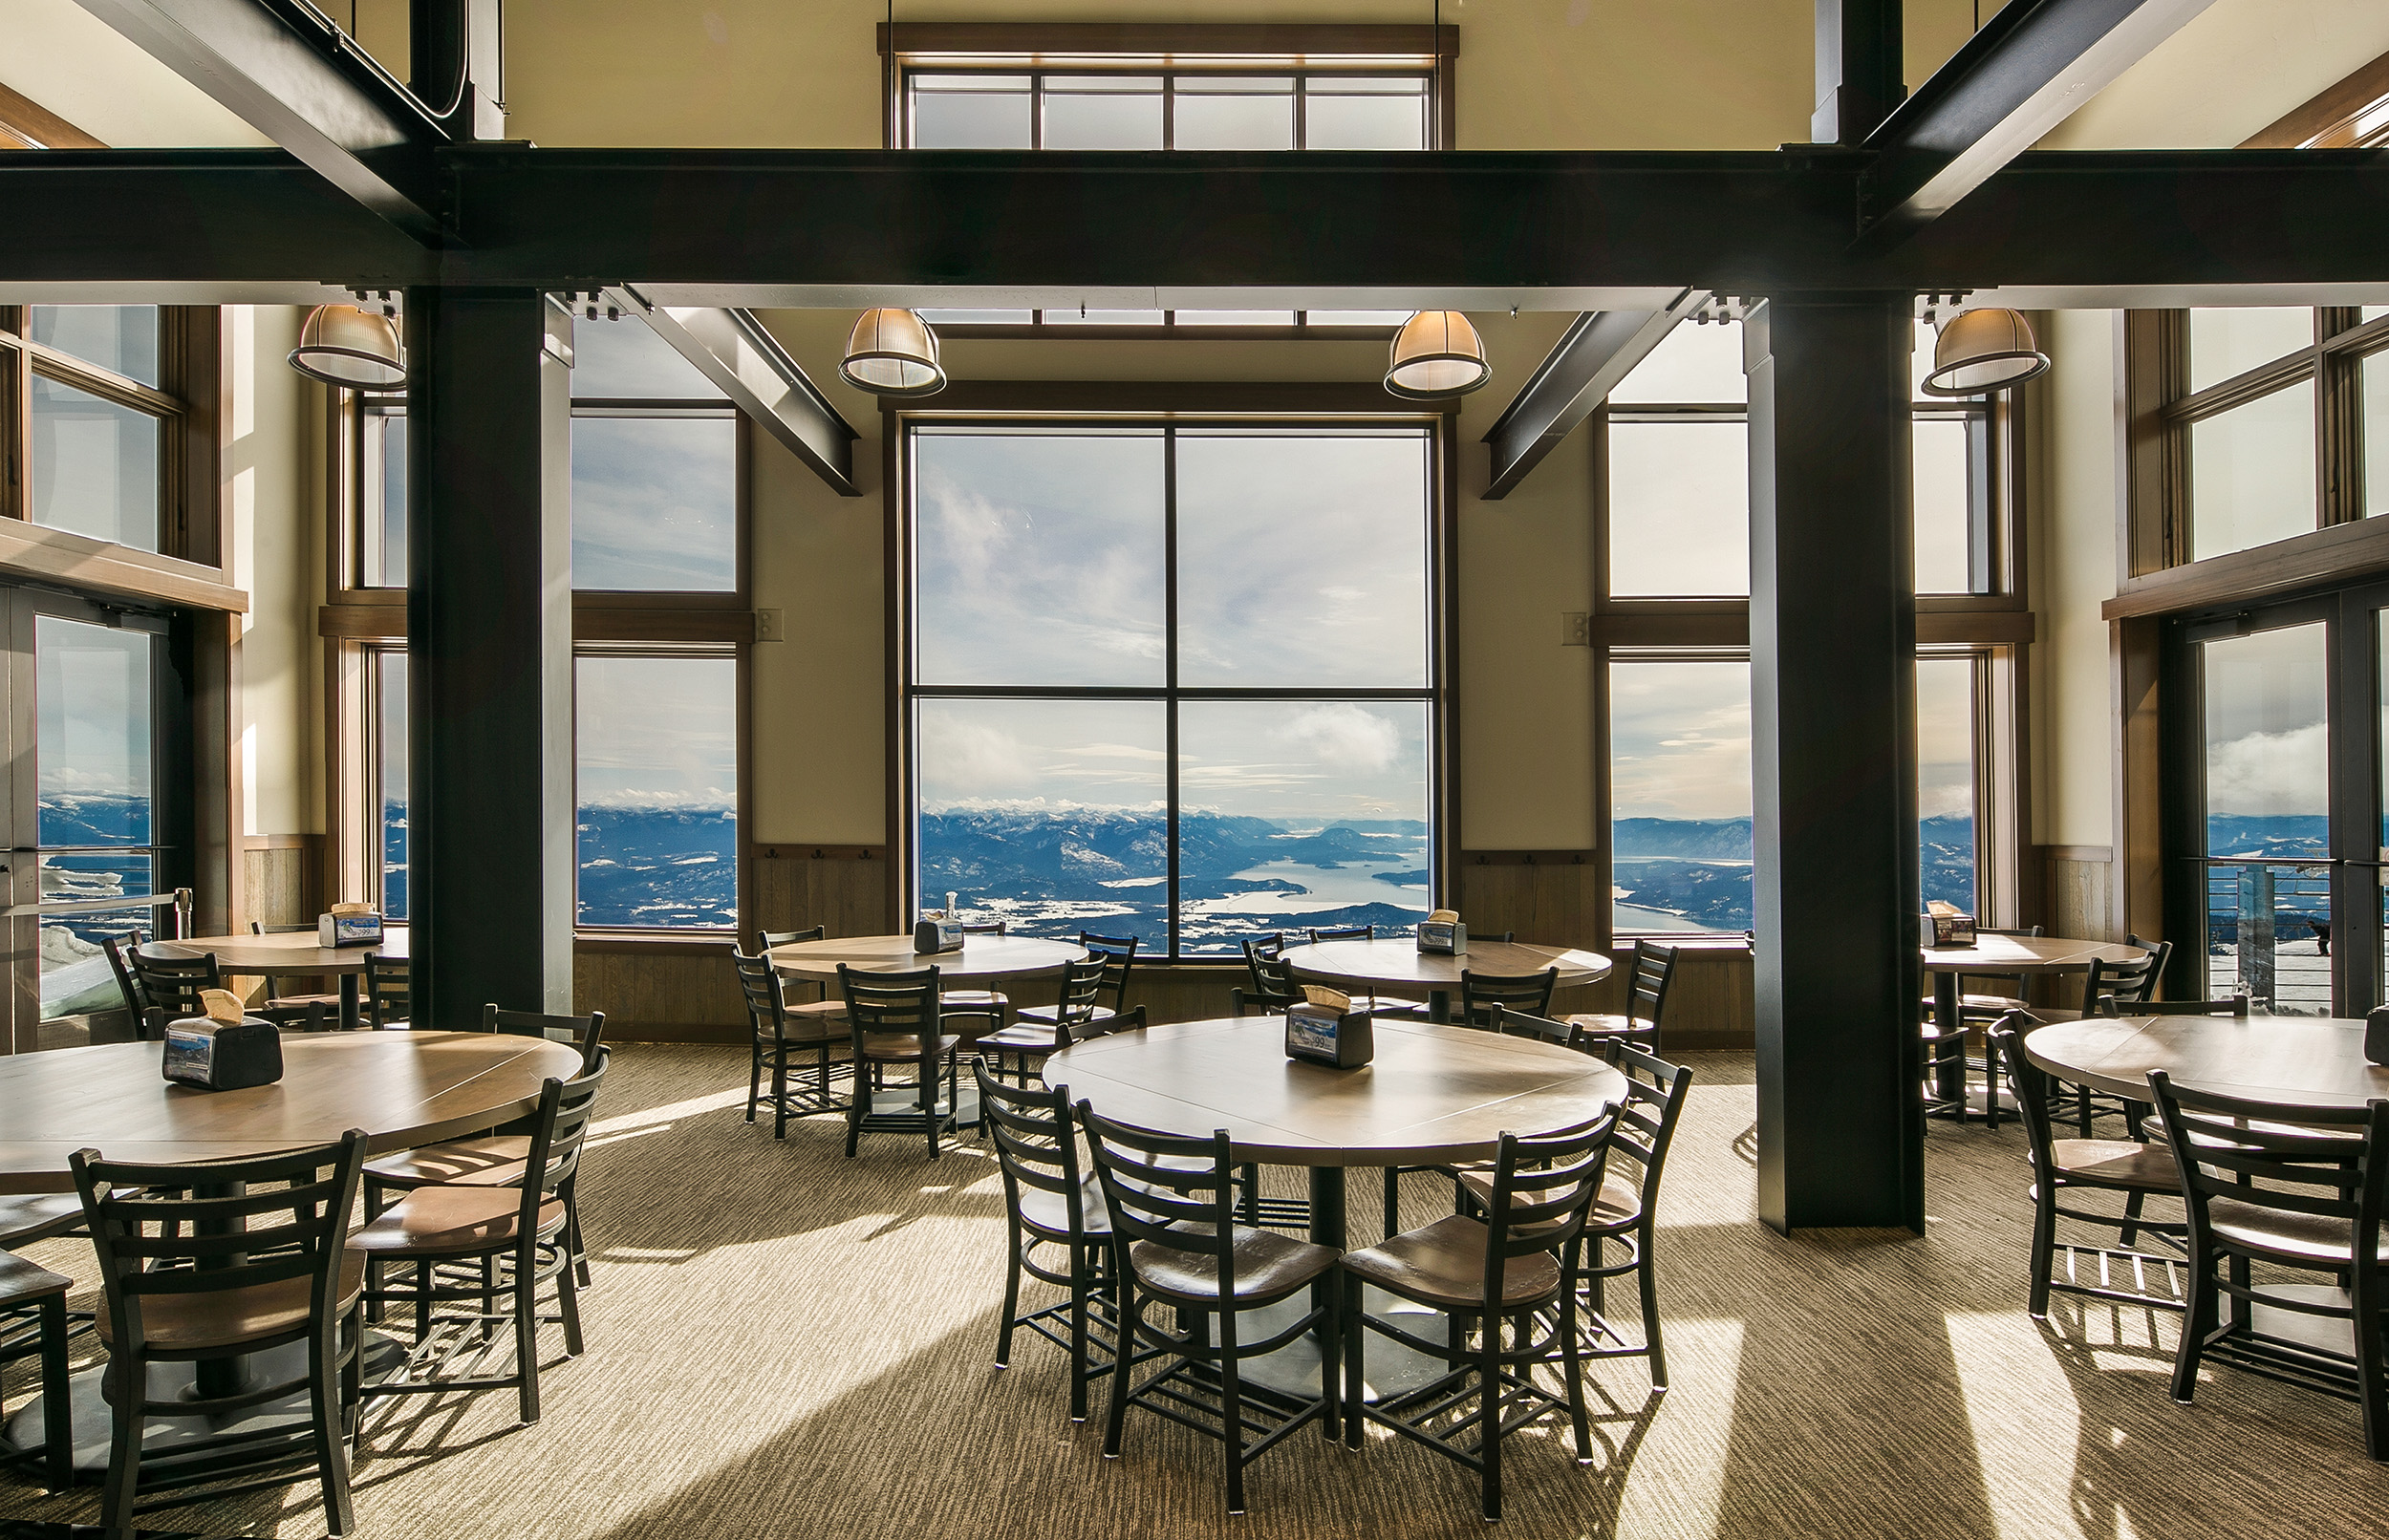 Skyhouse-interior-steel-beams-Schweitzer-Lodge-View-Lodge.jpg